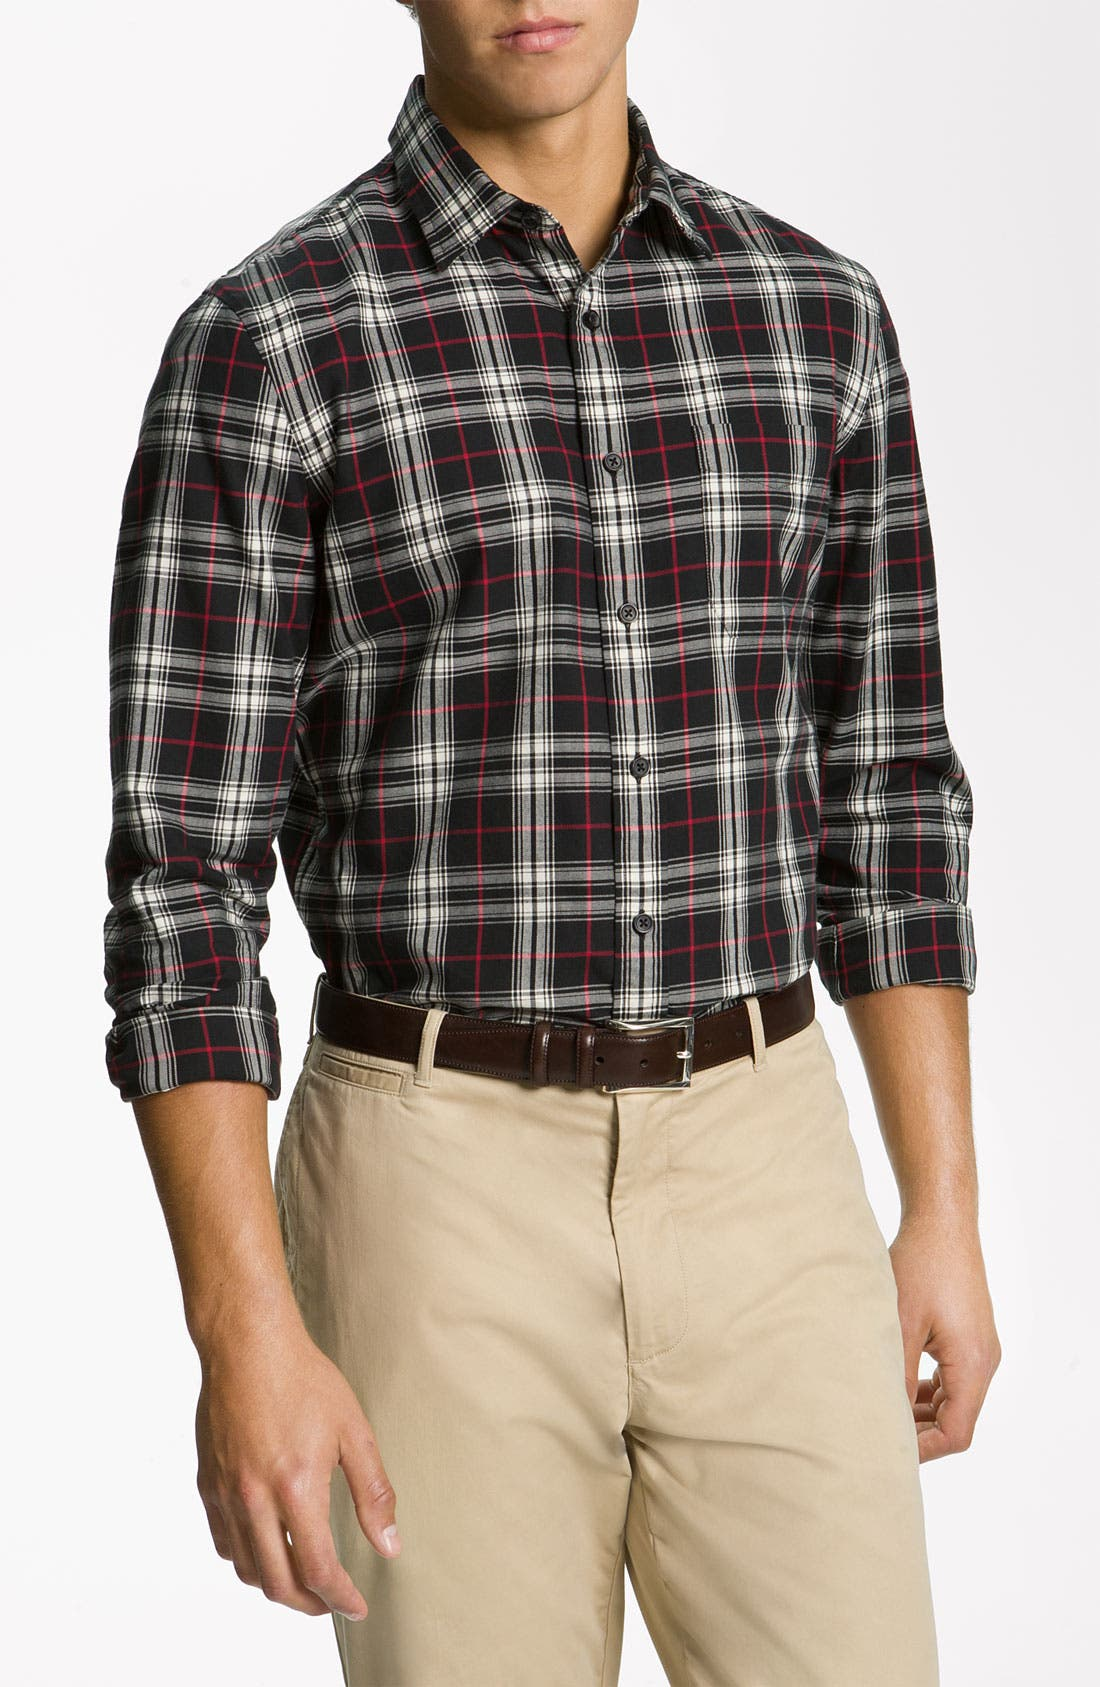 Alternate Image 1 Selected - Wallin & Bros. Plaid Sport Shirt